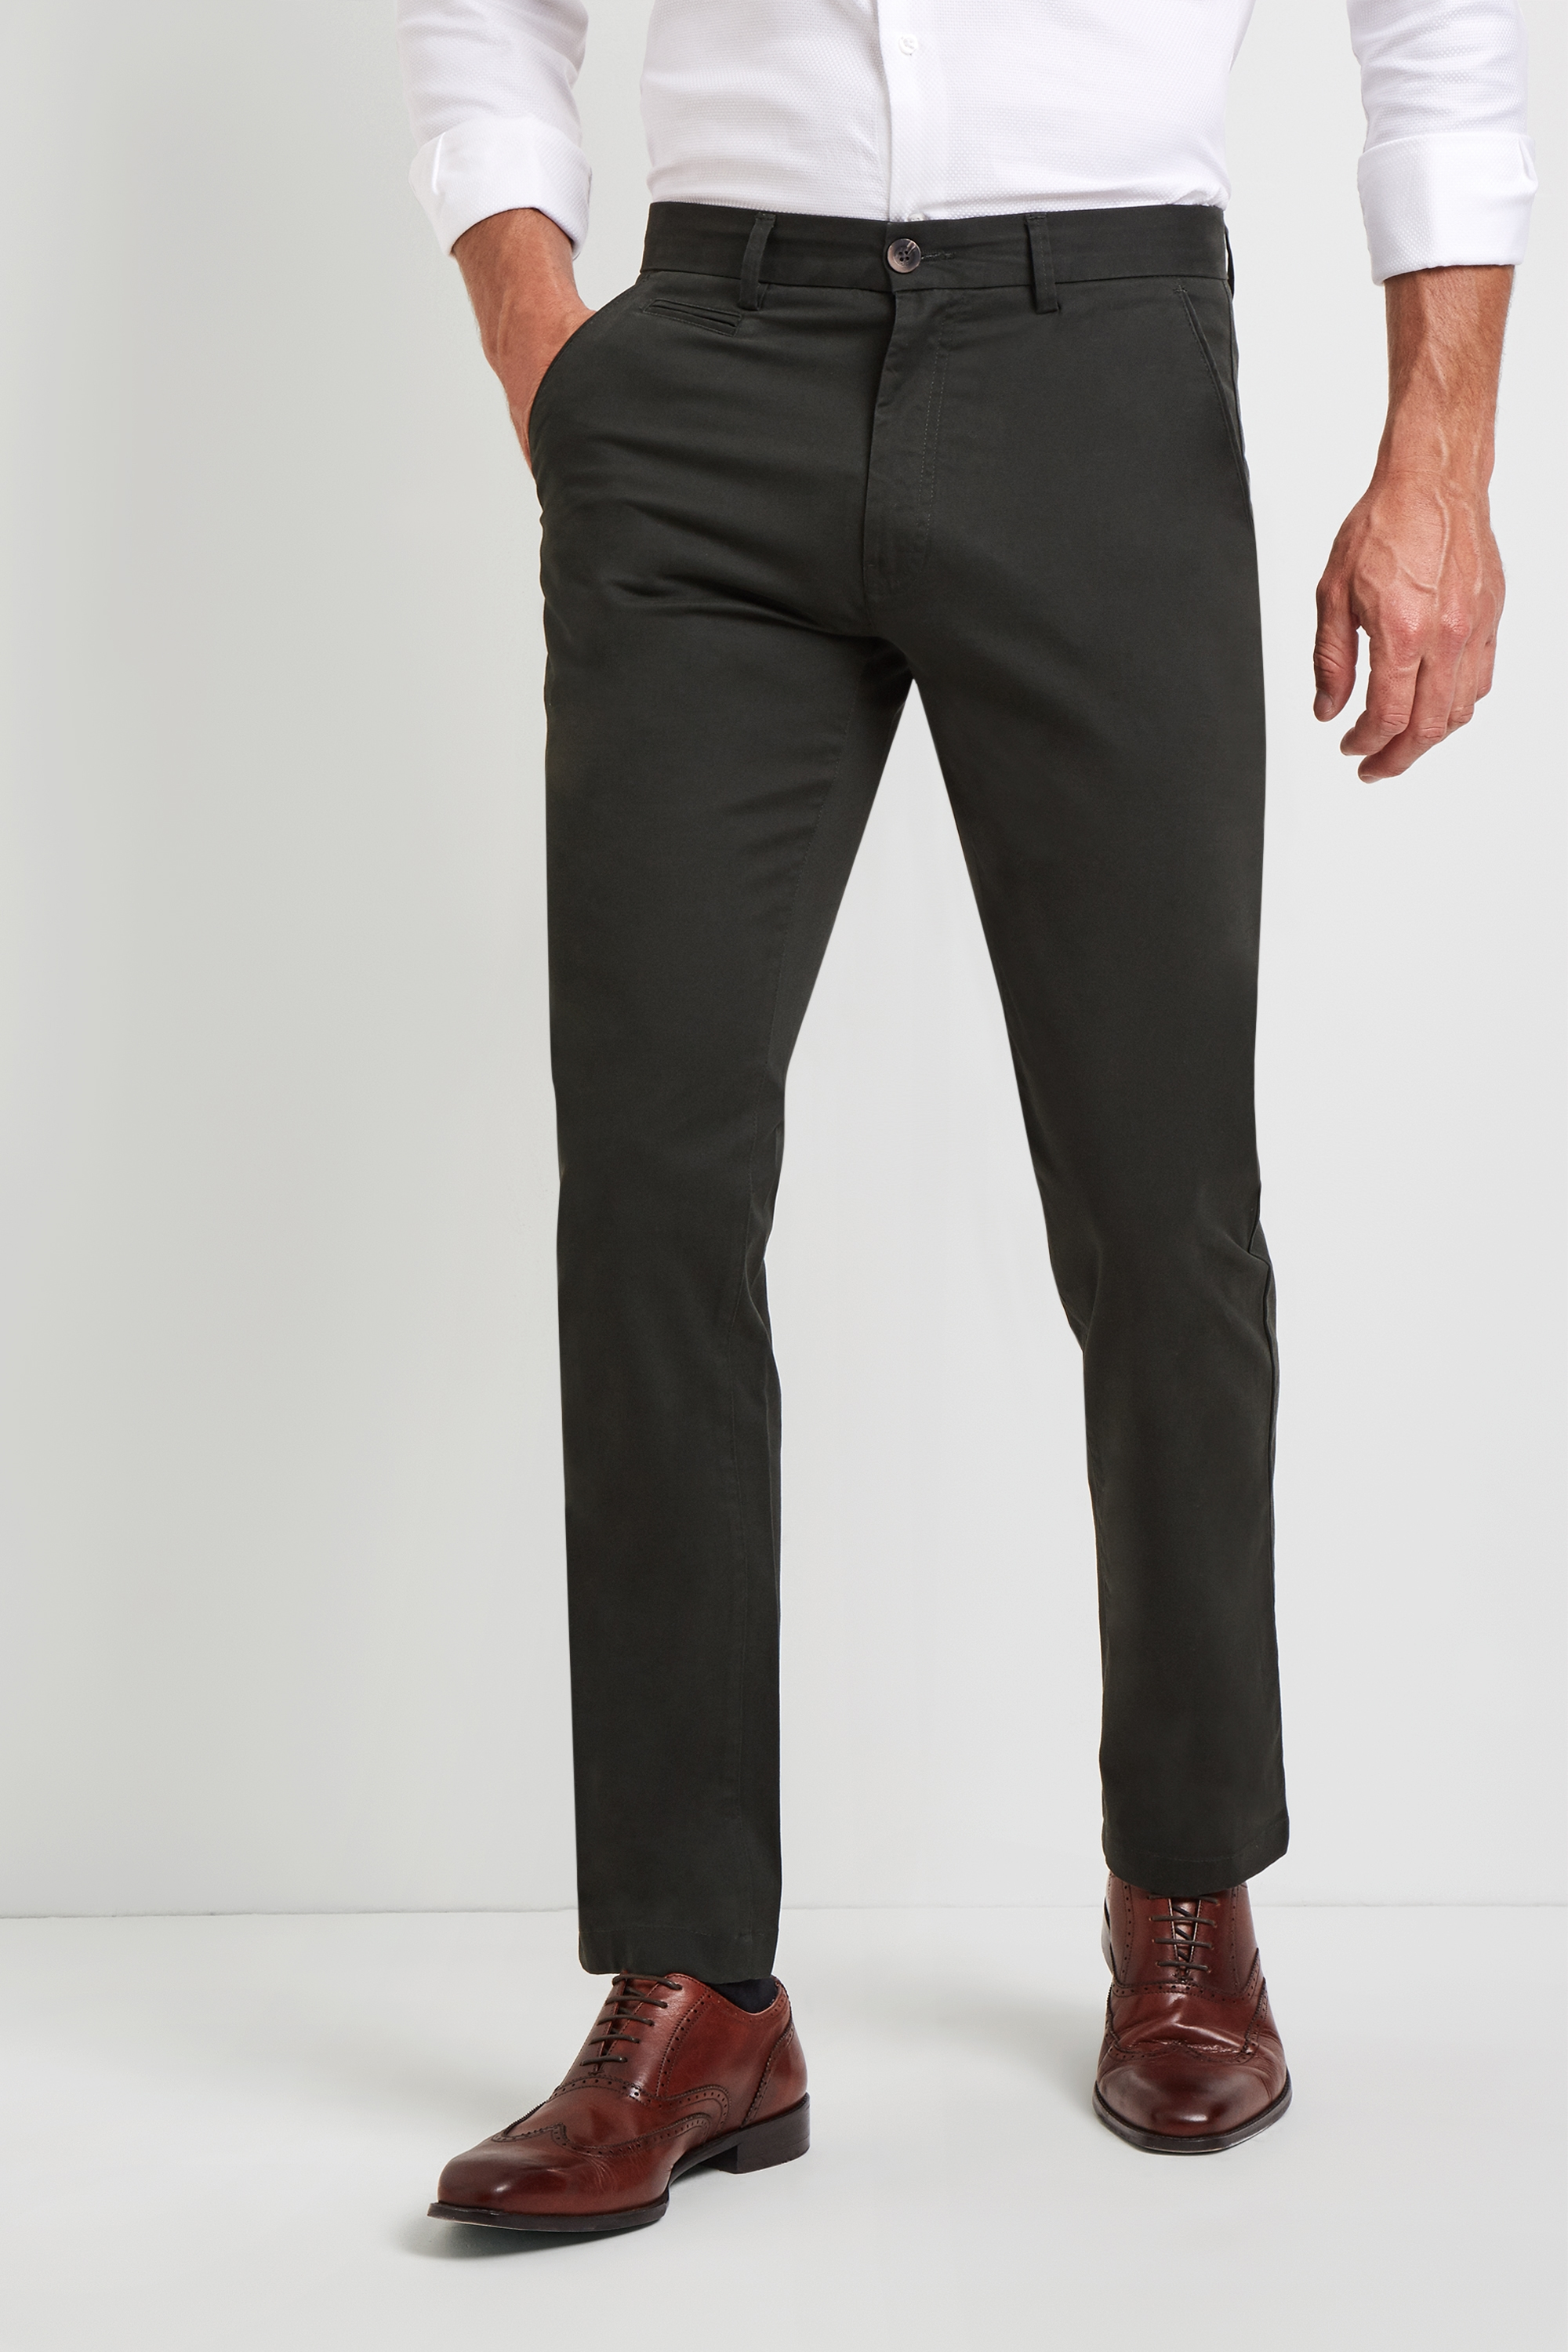 Moss Bros Moss 1851 Tailored Fit Forest Green Stretch Chinos